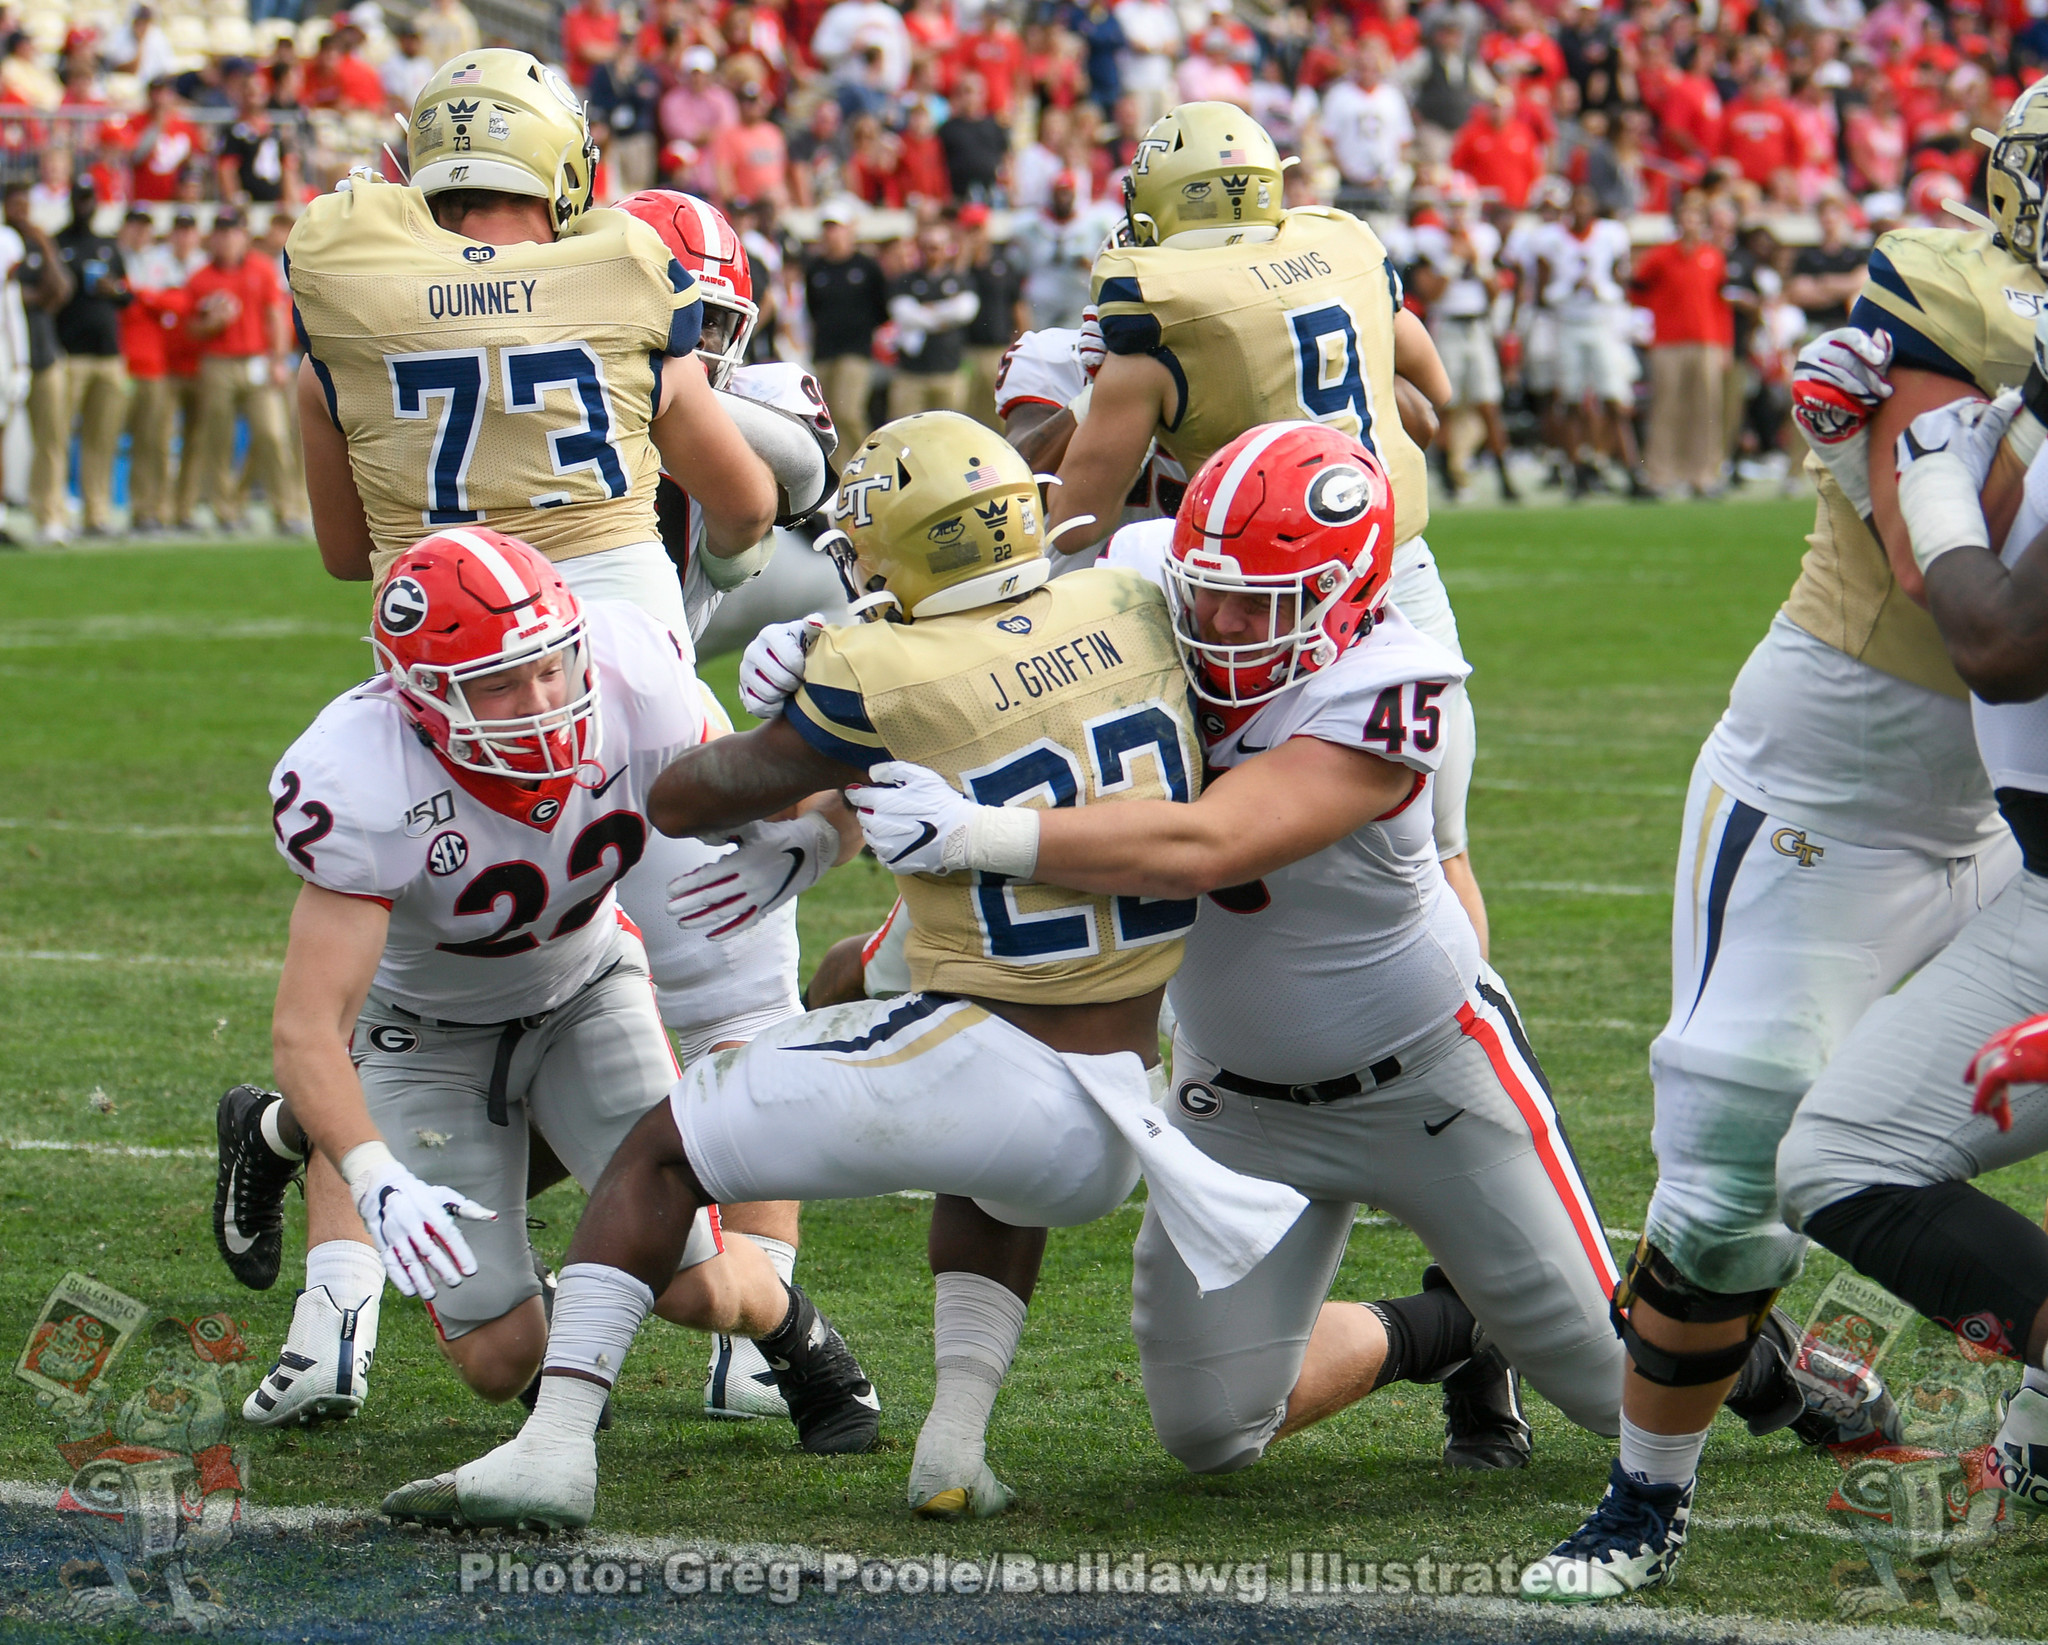 Nate McBride (22) and Bill Norton (45) - Georgia vs. Georgia Tech 2019 - Fourth Quarter - November 30, 2019